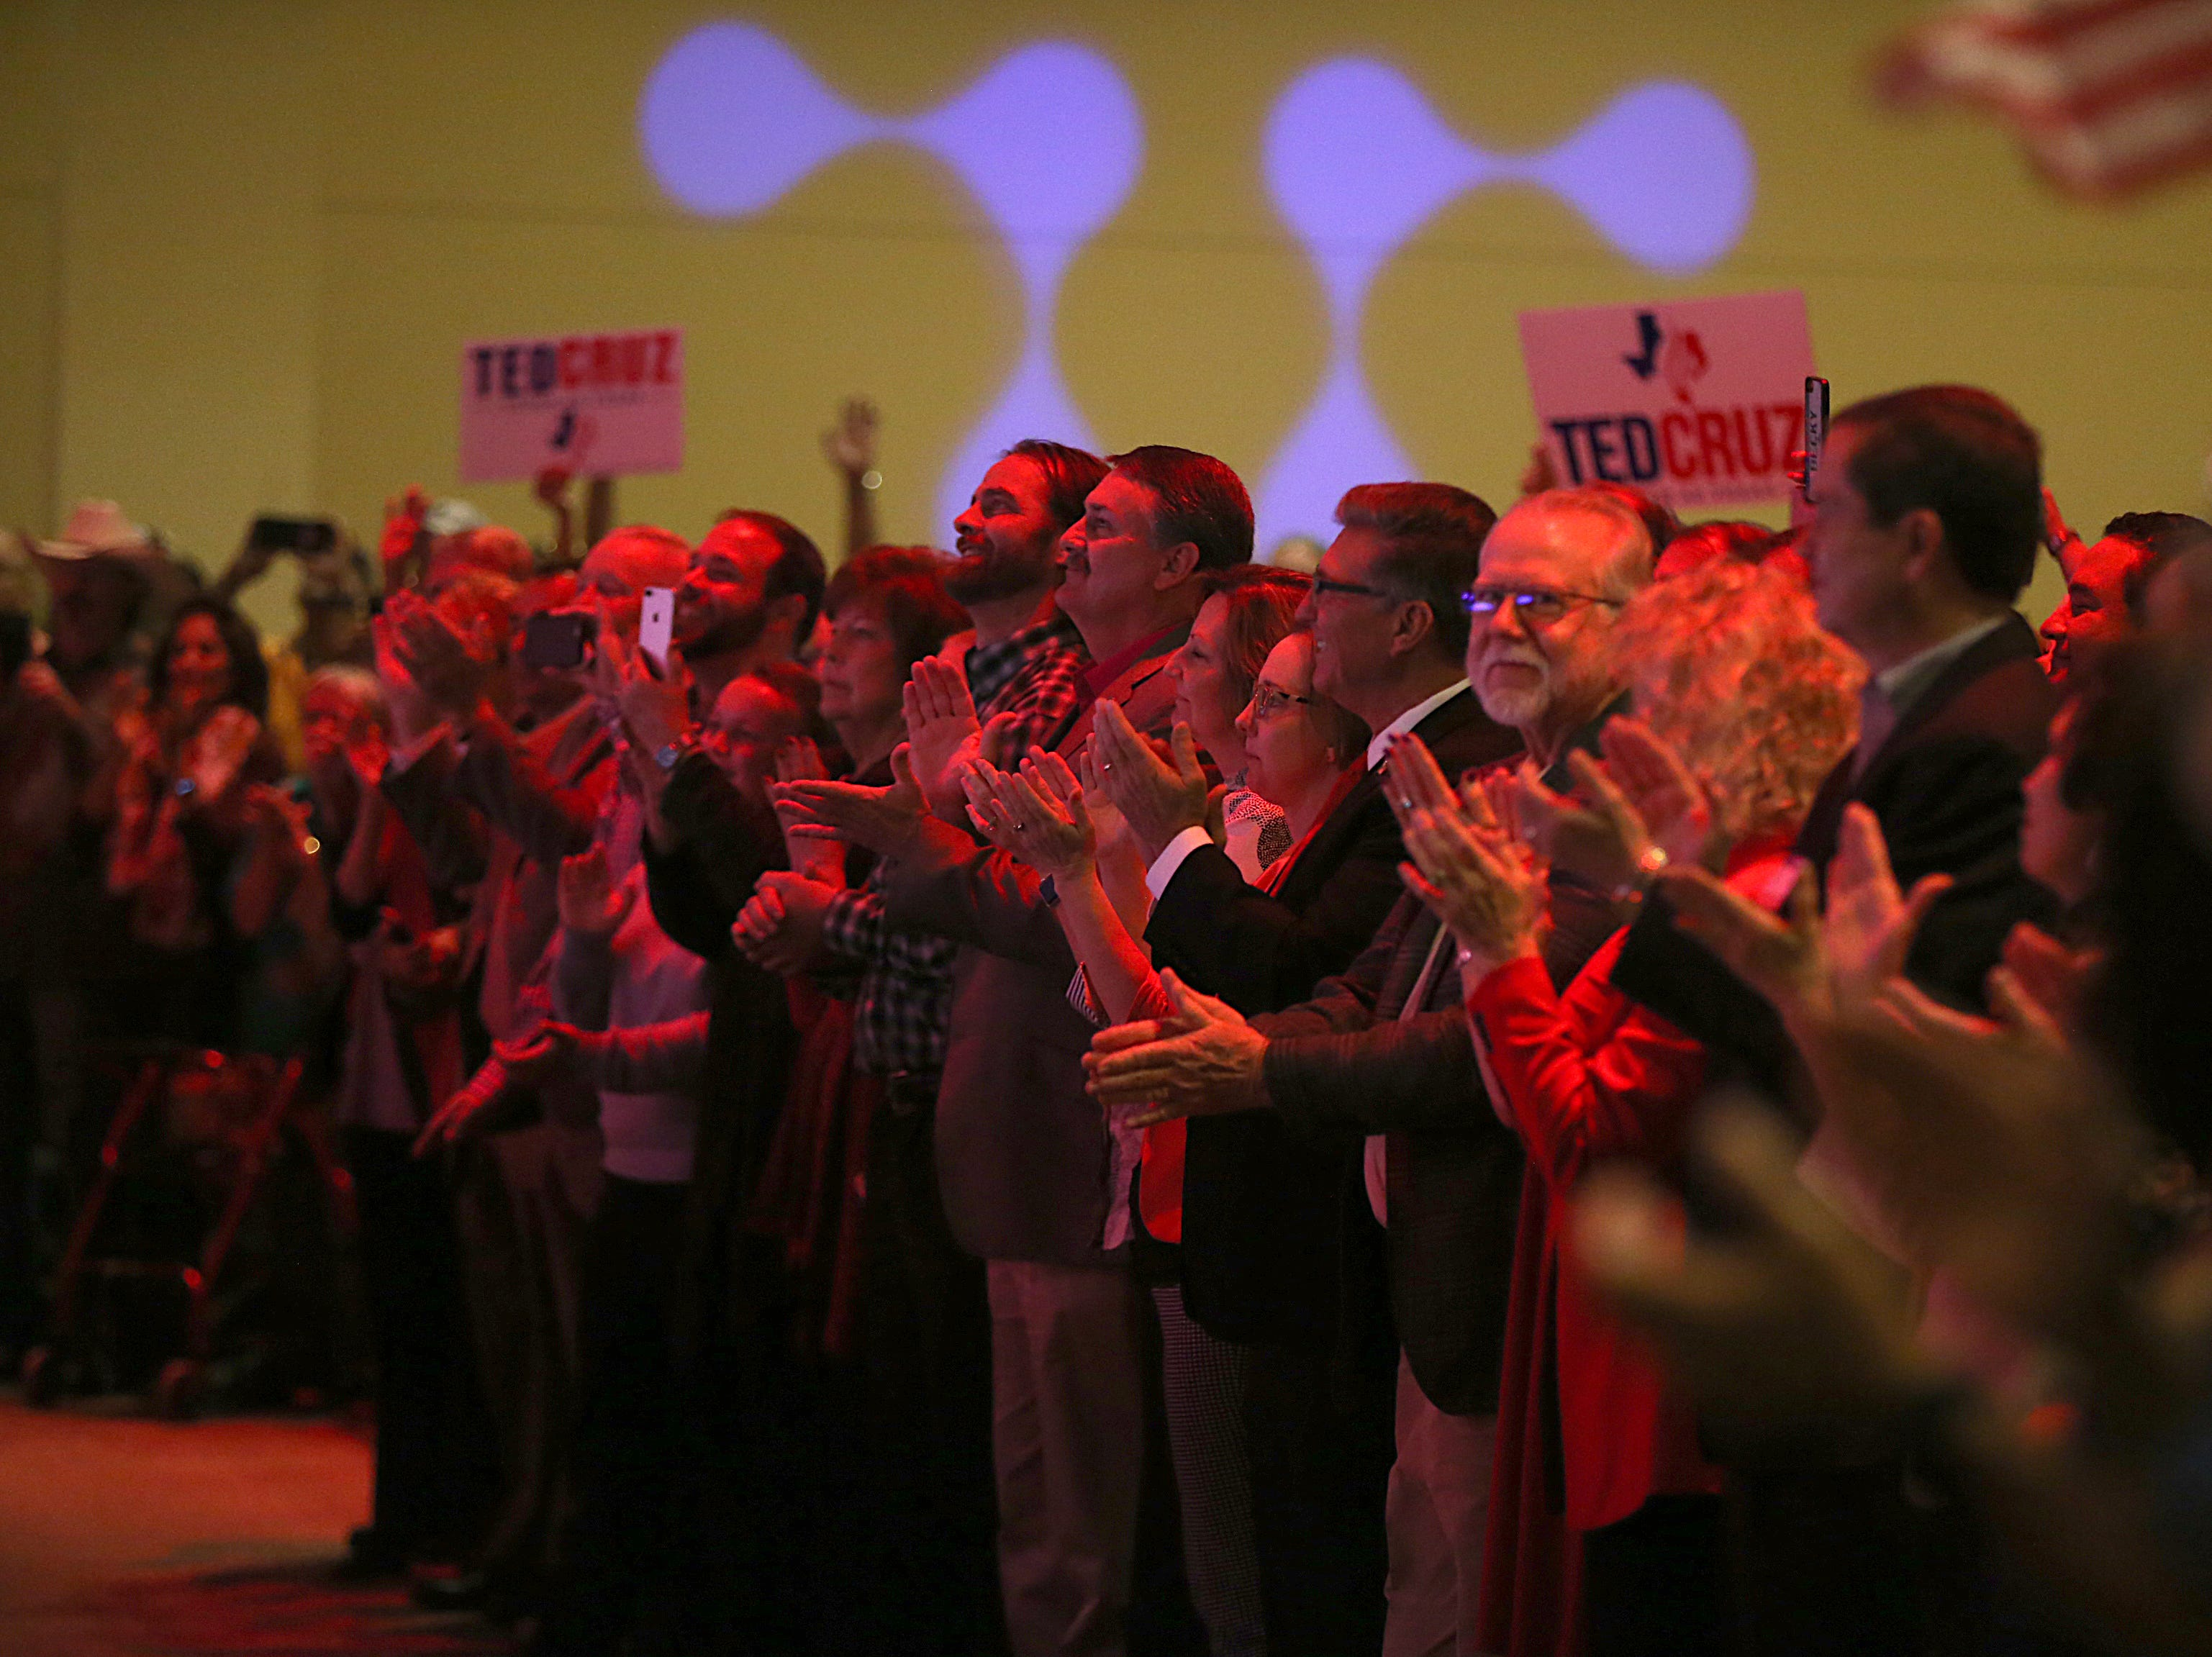 Supporters of Sen. Ted Cruz hold up signs Tuesday, Oct. 30, 2018, at a speaking event at The Life Church in San Angelo.